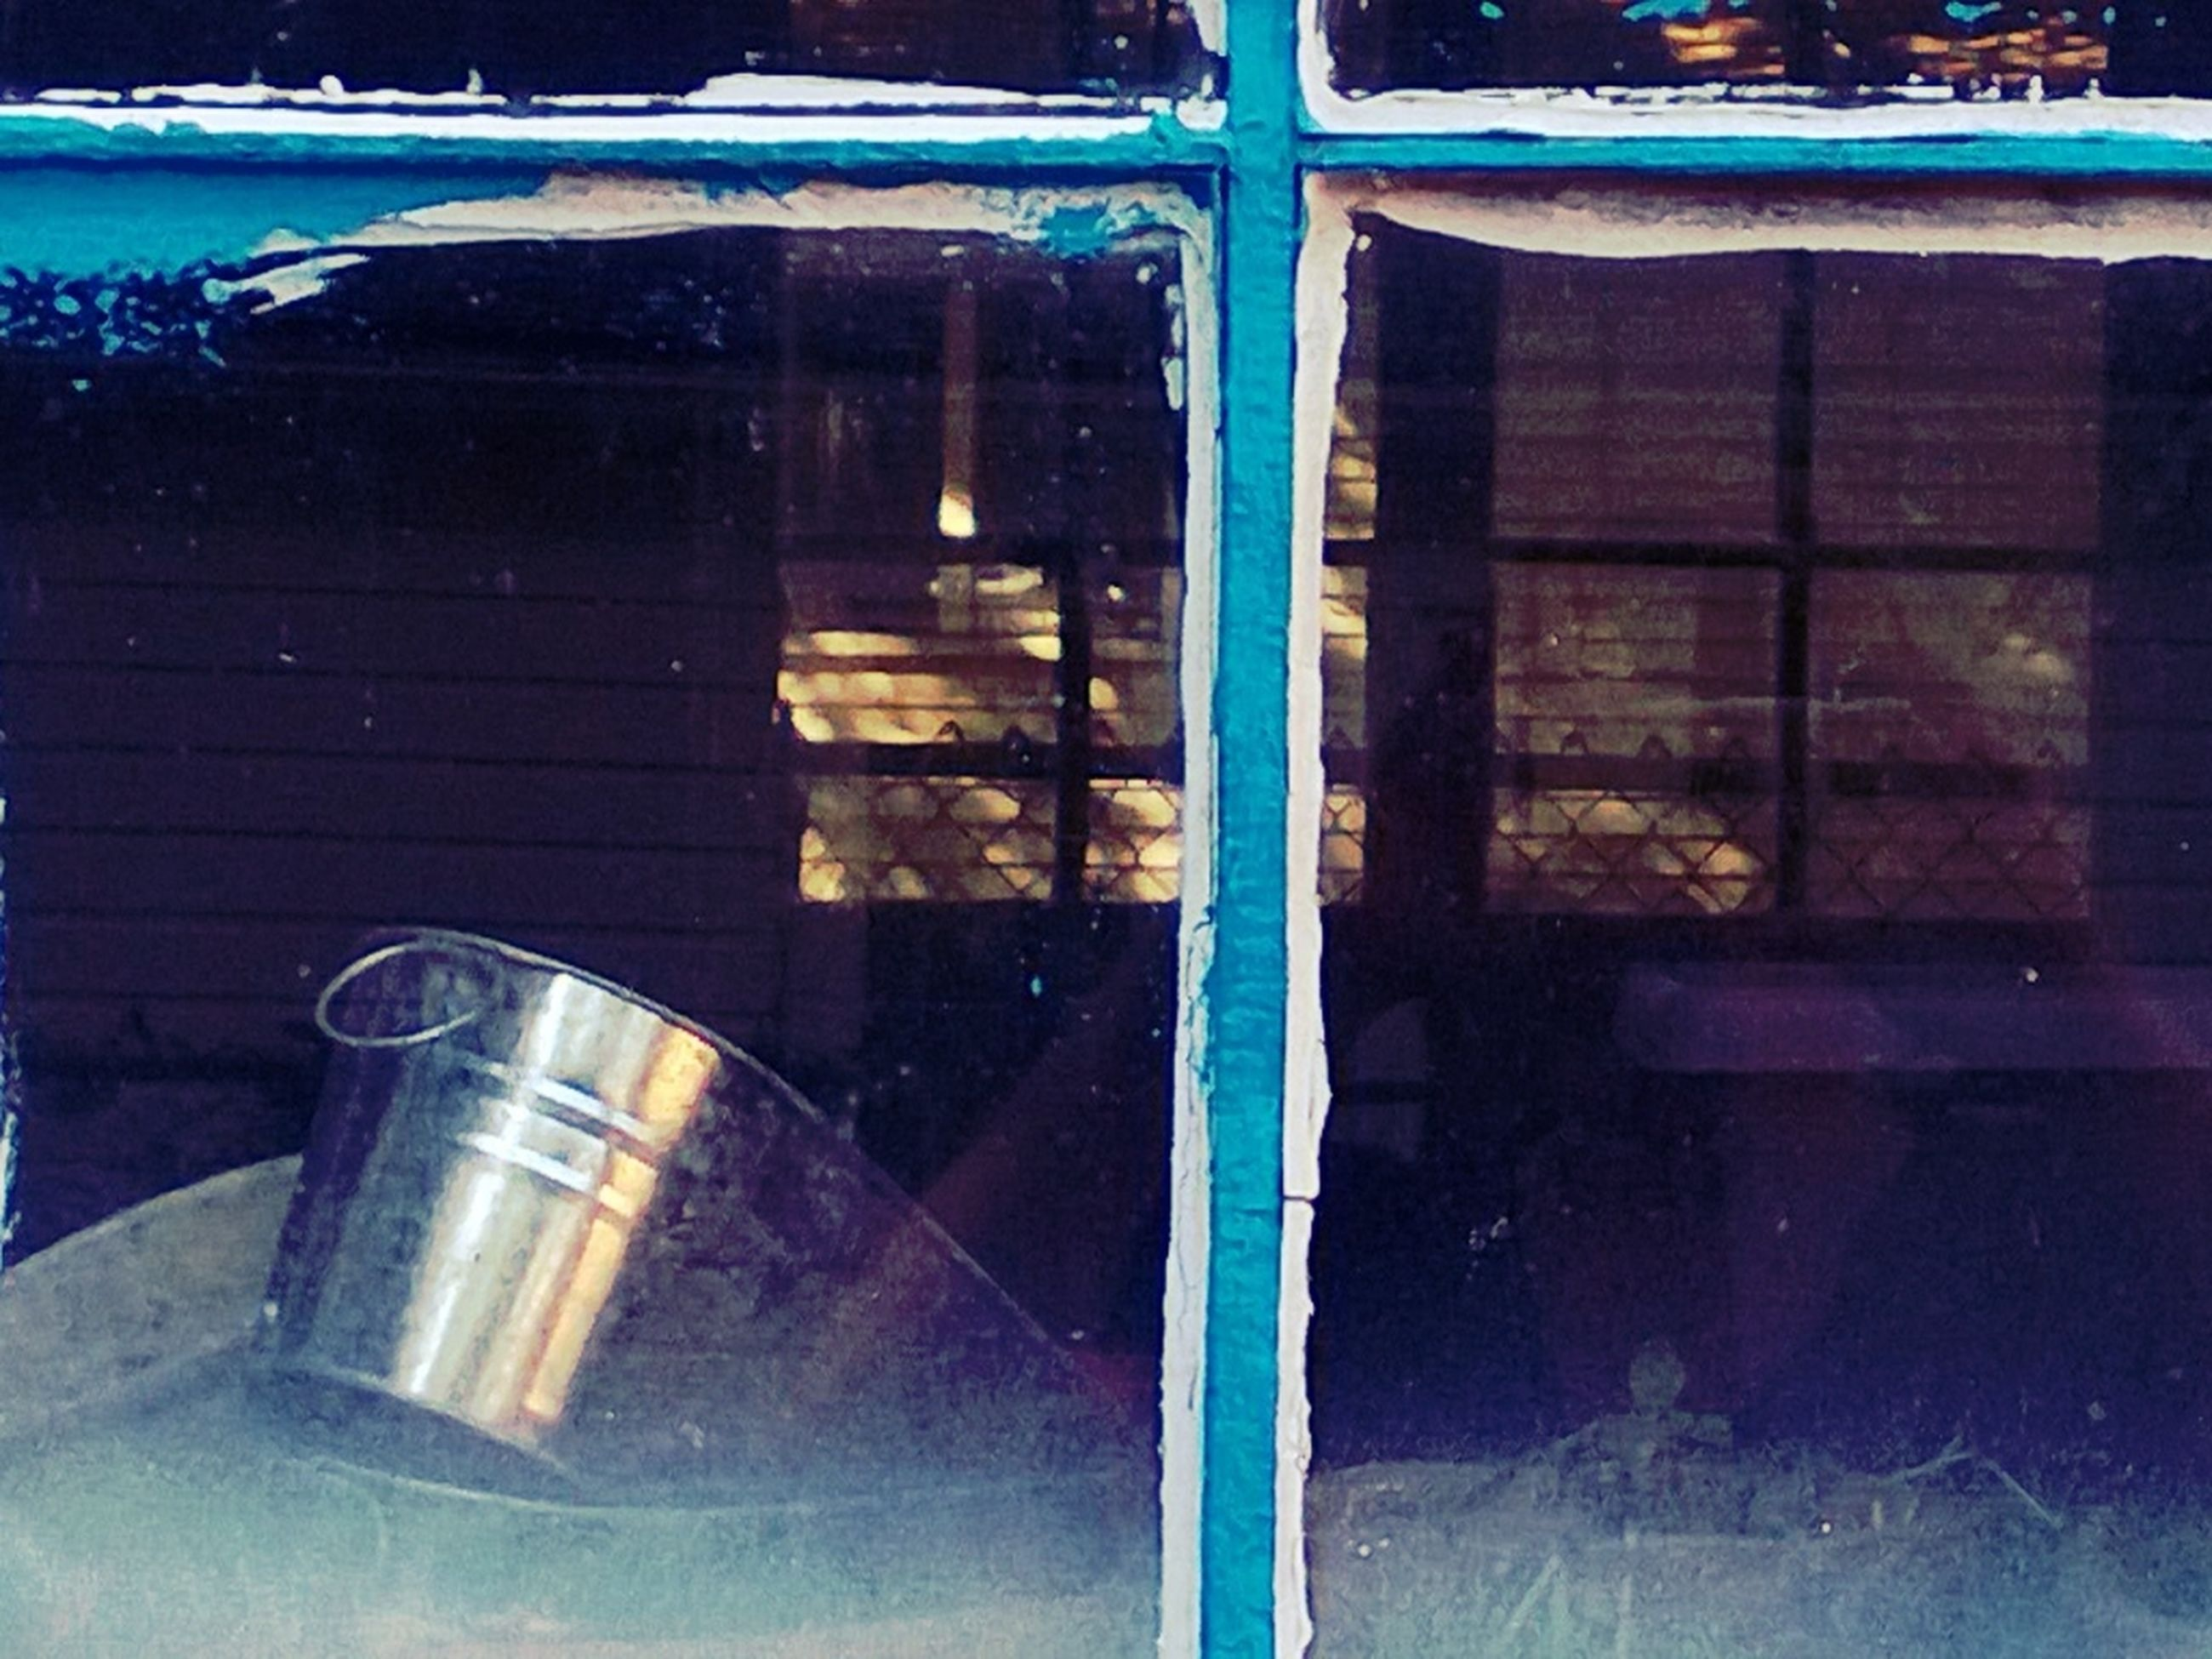 glass - material, window, blue, transparent, indoors, reflection, built structure, closed, abandoned, door, no people, metal, old, architecture, house, wall - building feature, glass, building exterior, damaged, close-up